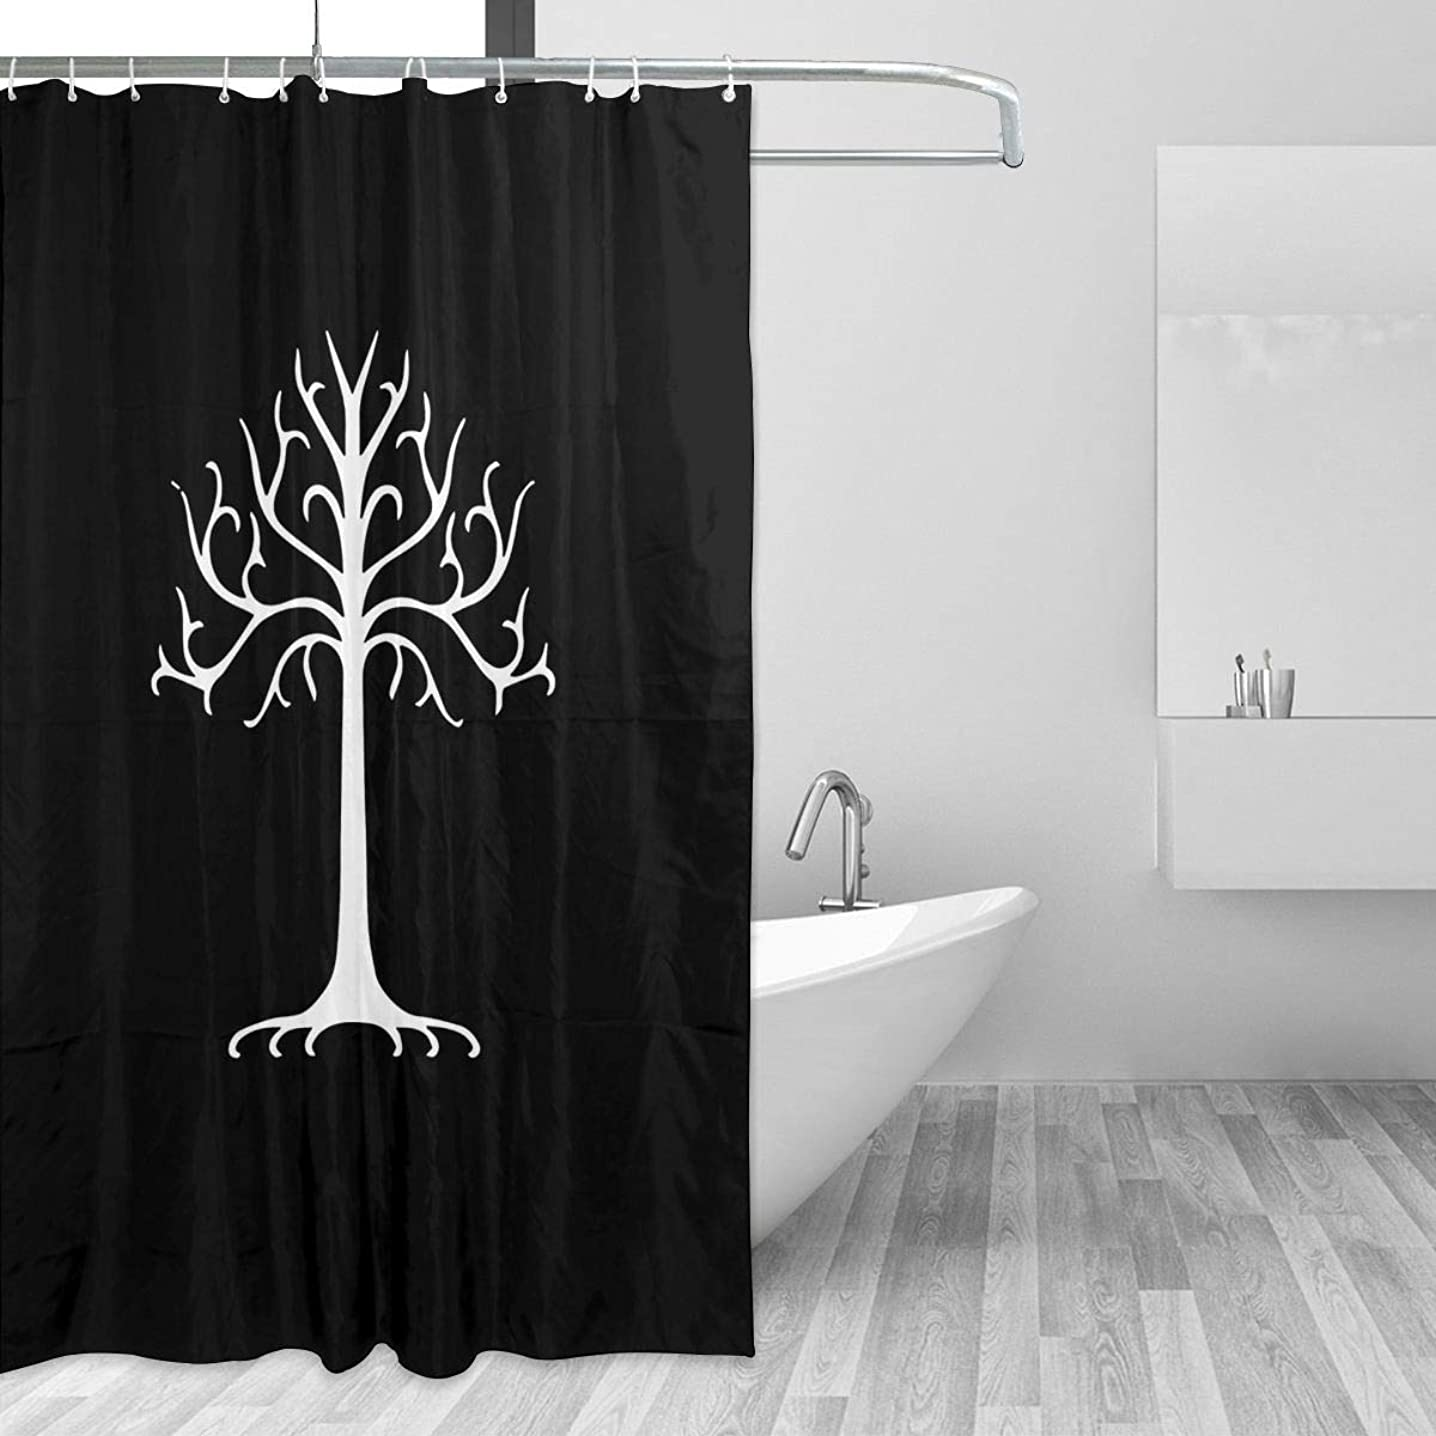 Warm-Tone Art White Tree of Gondor Shower Curtain Stylish and Individual Bathroom Curtain Decoration with Hooks - 60x72 Inches